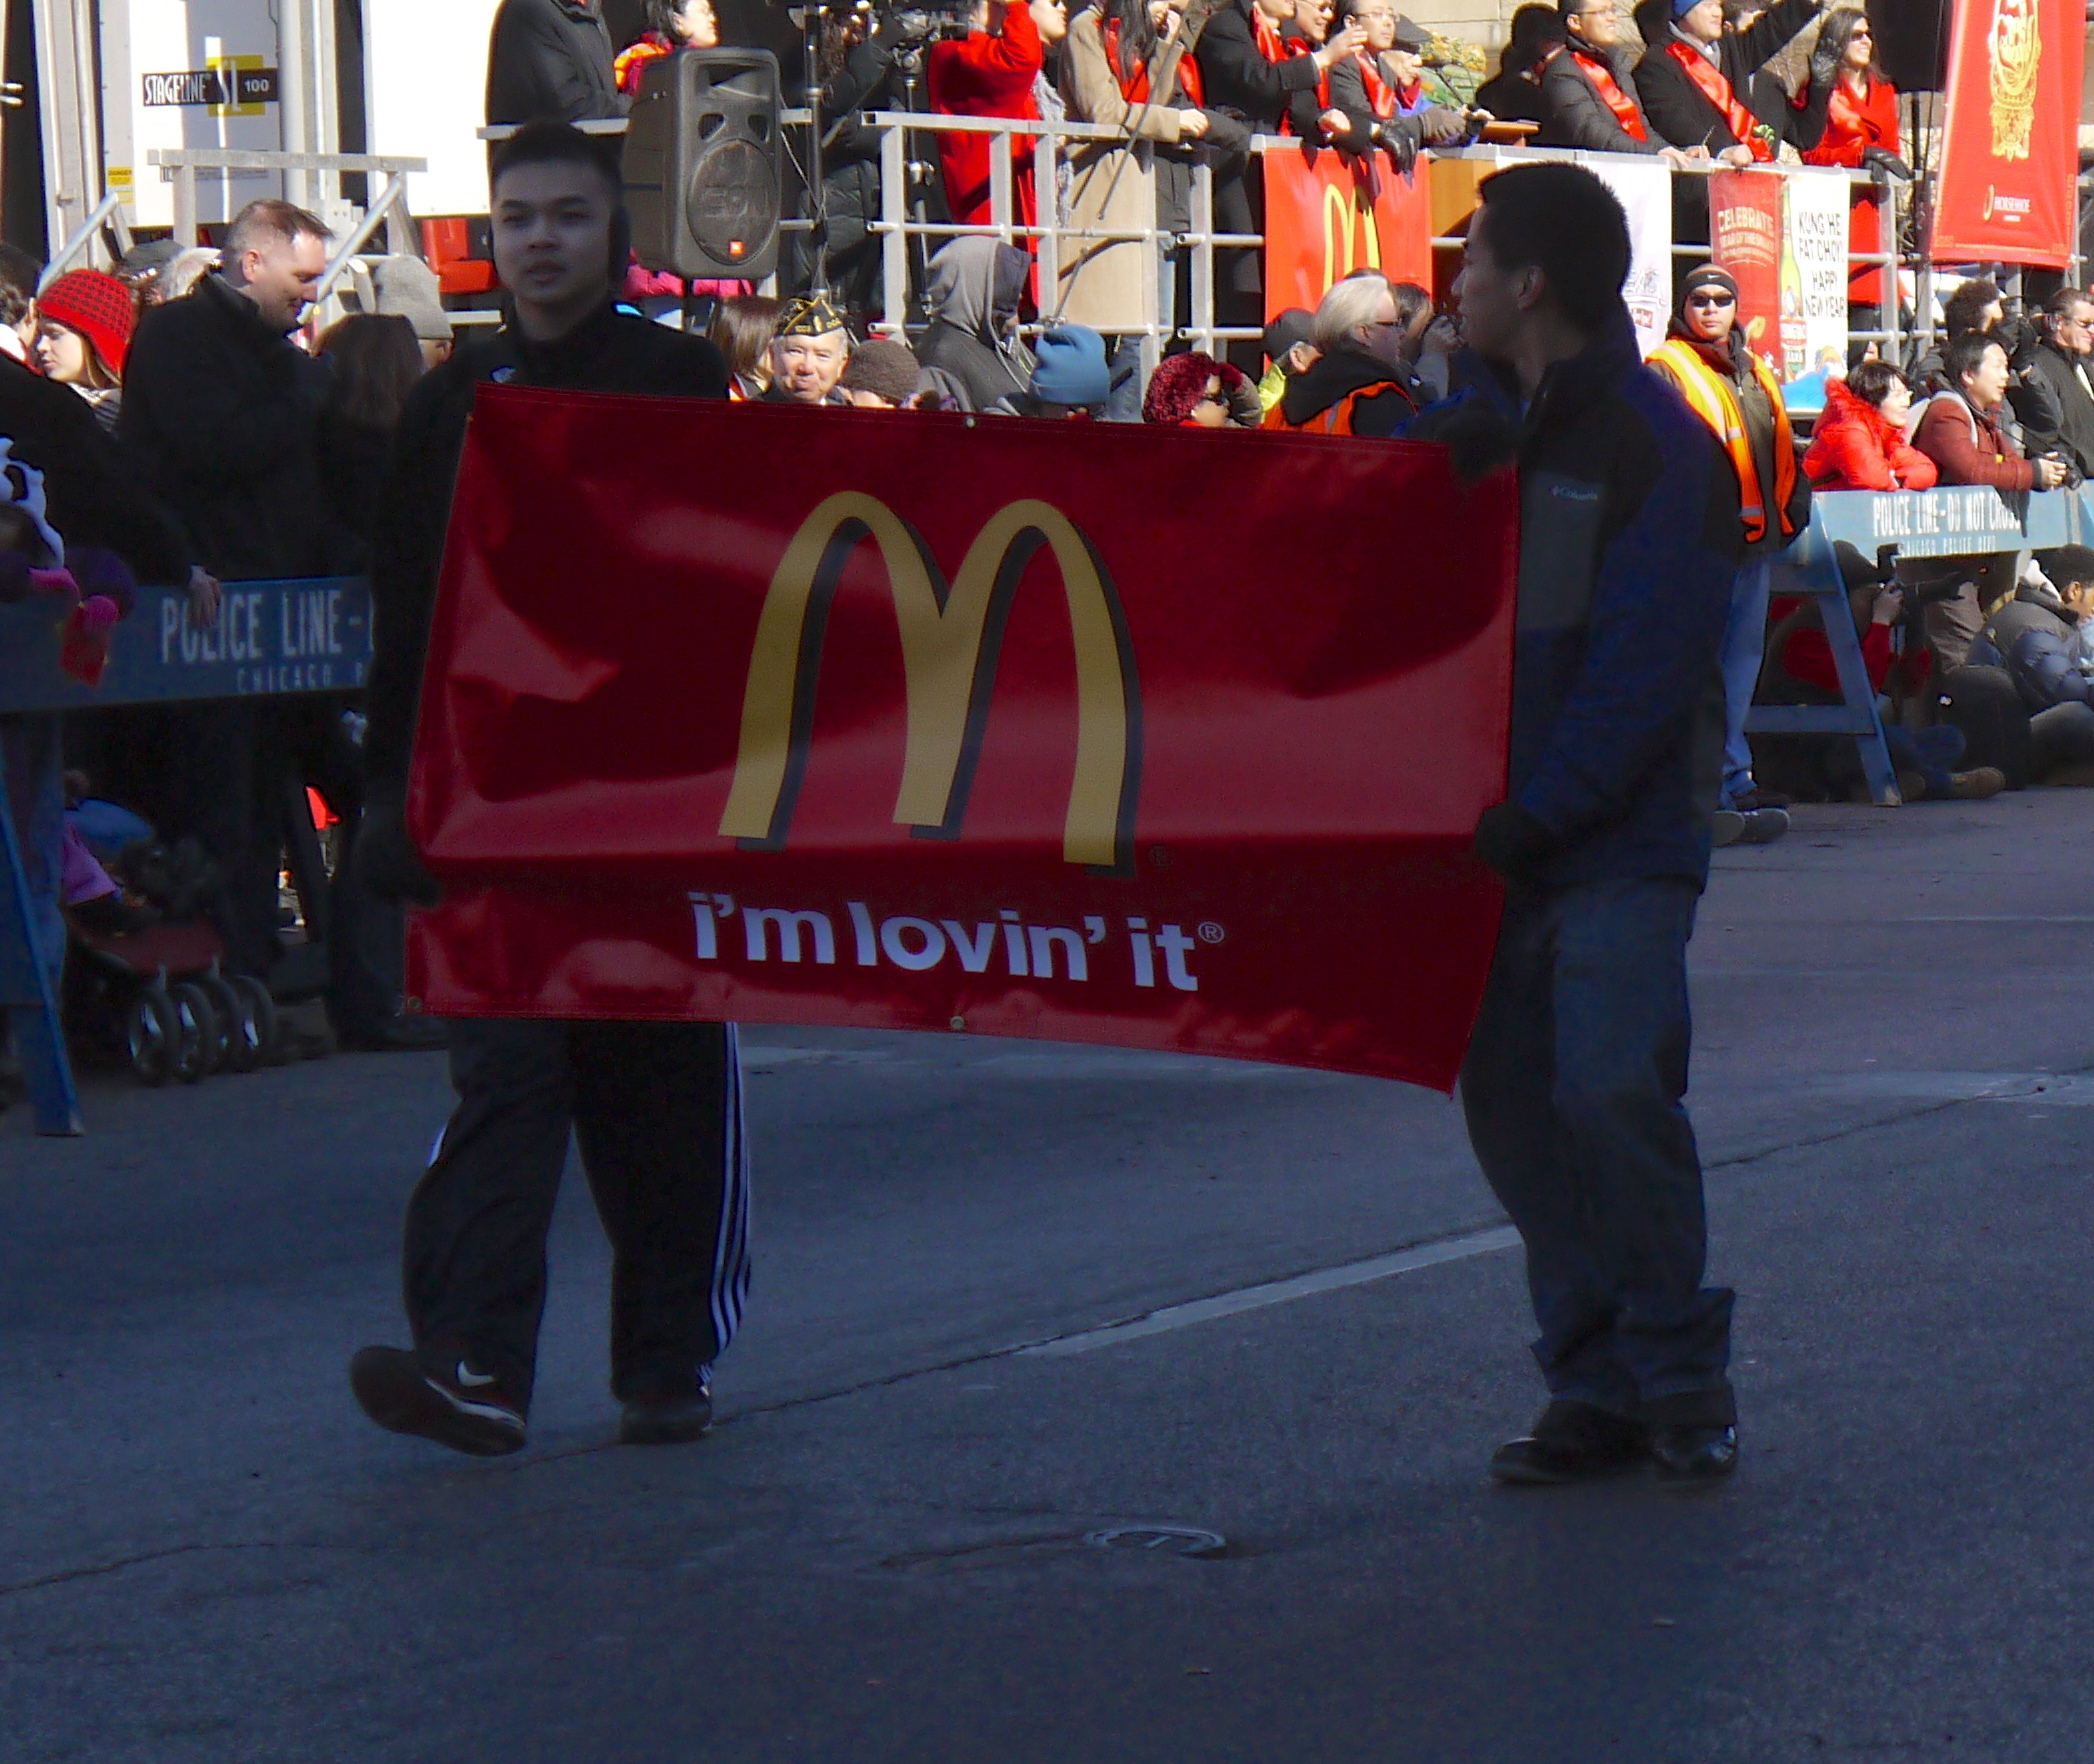 What's a parade without McDonald's?